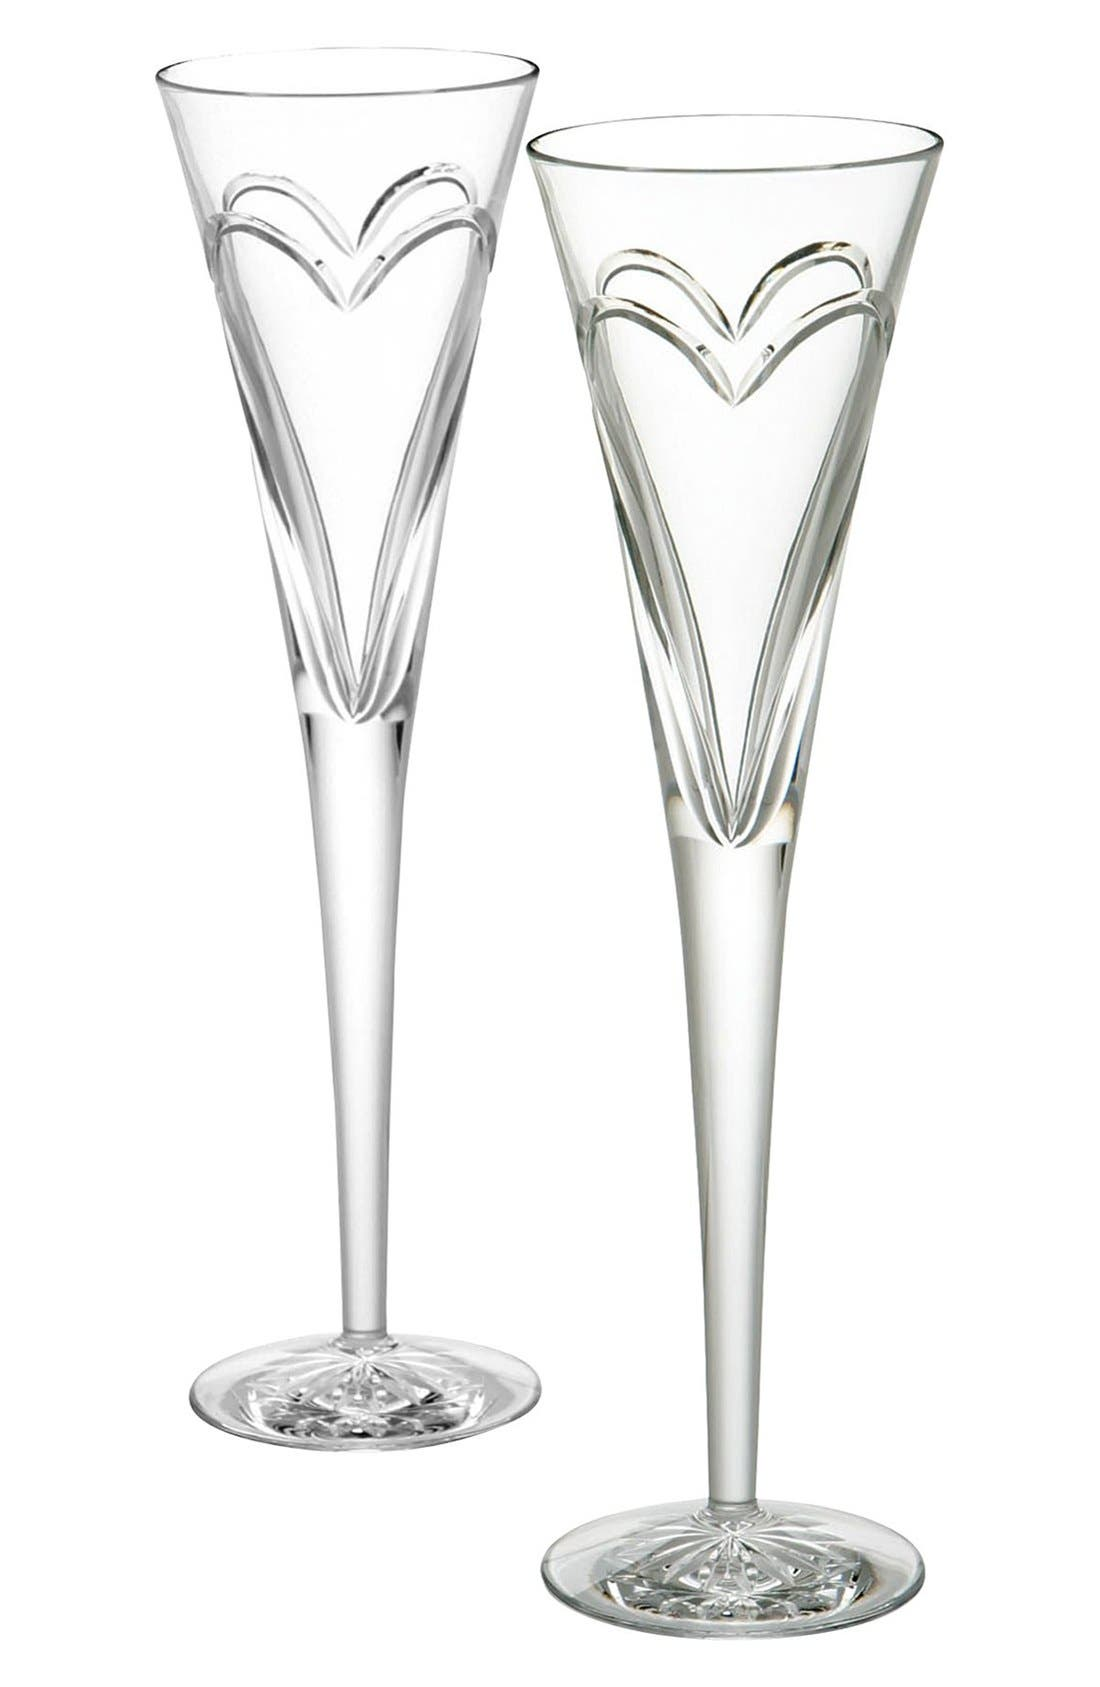 Alternate Image 1 Selected - Waterford 'Wishes Love & Romance' Lead Crystal Champagne Flutes (Set of 2)